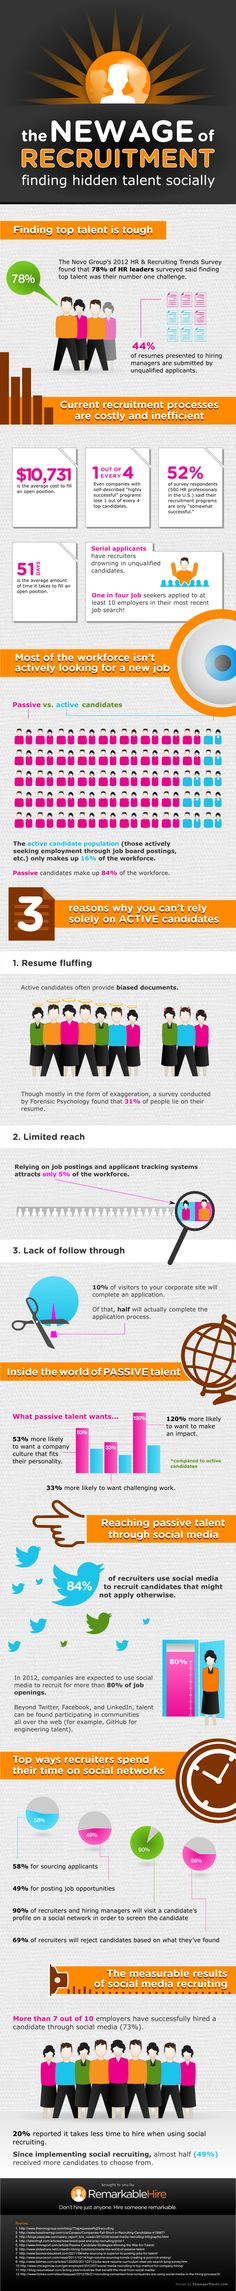 The New Age of Recruitment: Finding Hidden Talent Socially [INFOGRAPHIC] - RecruitingBlogs